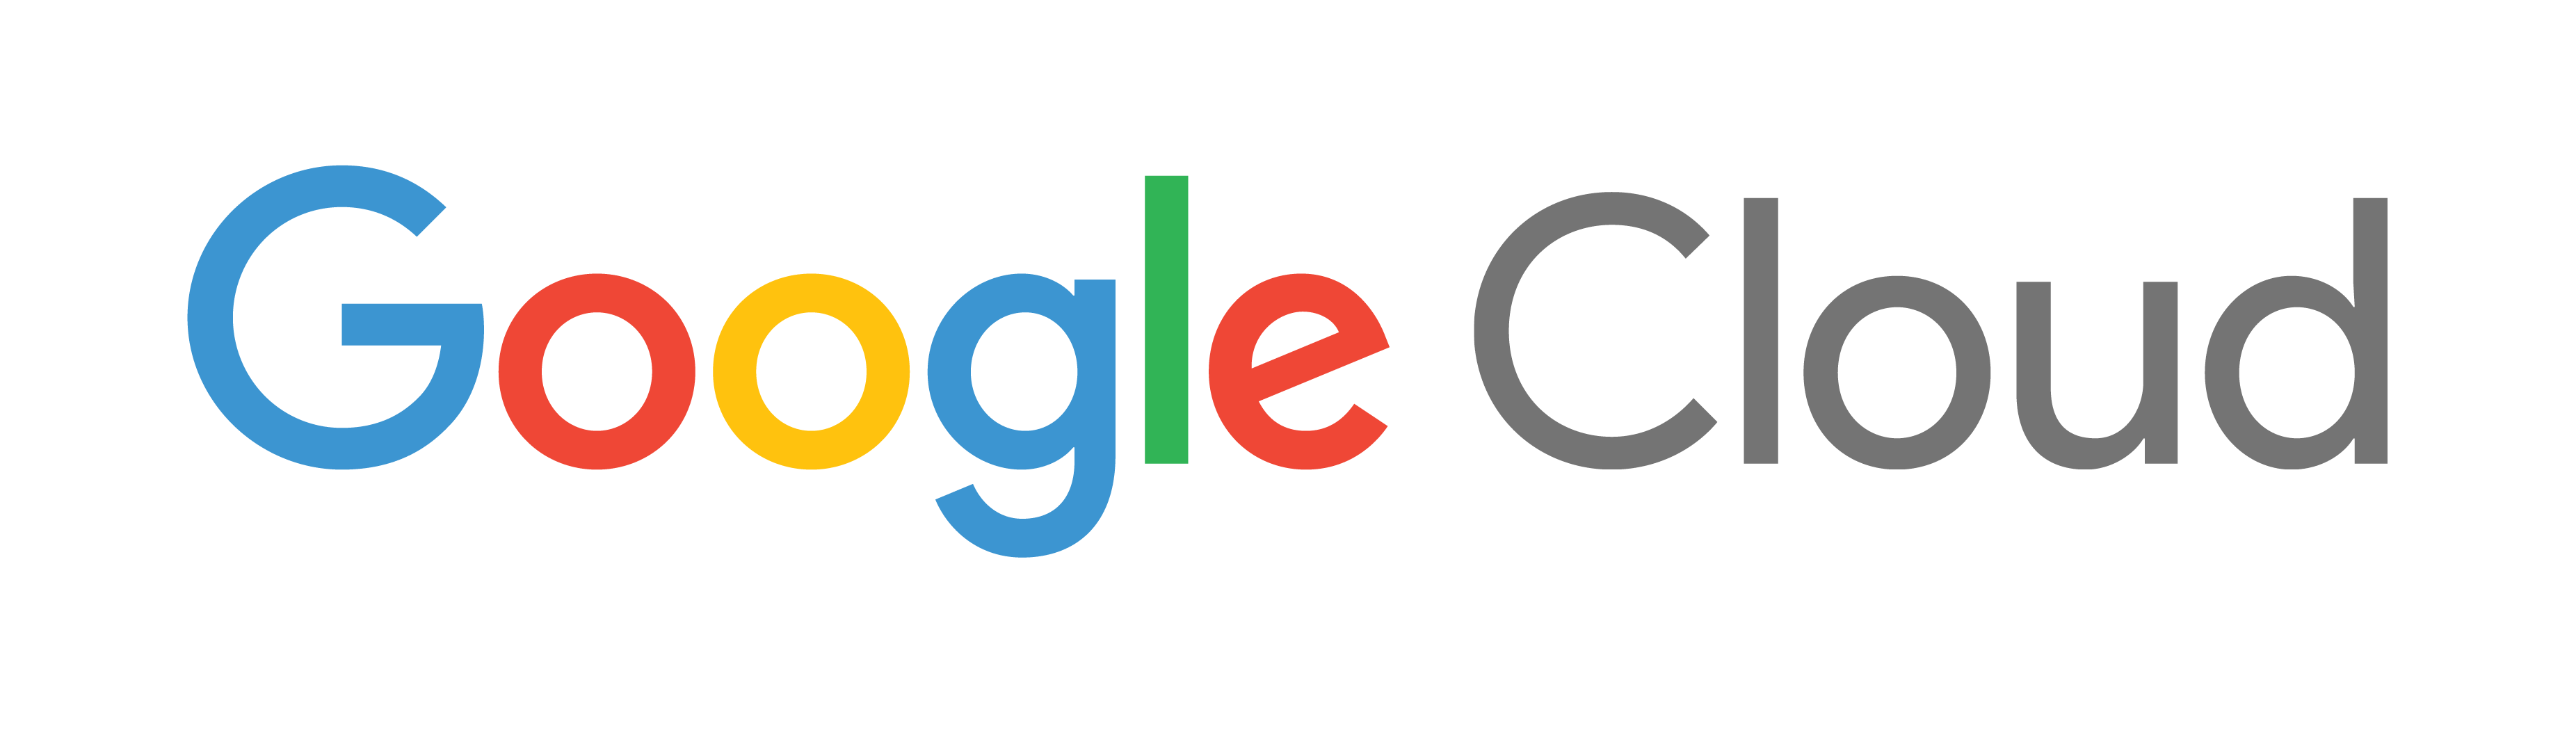 Google for Work logo eSource Capital